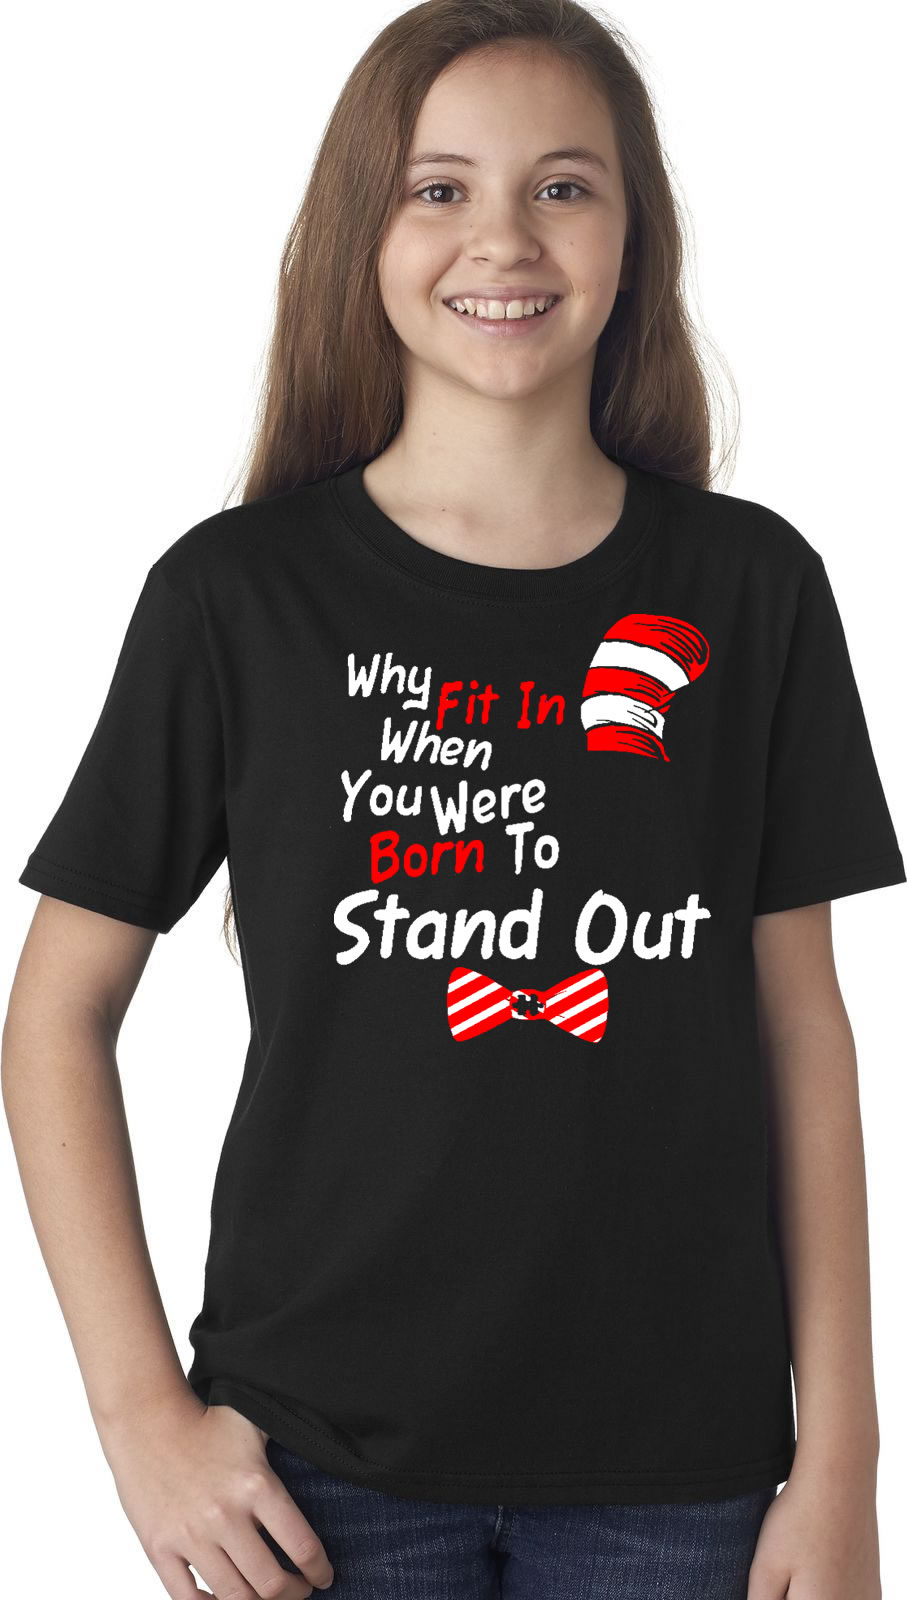 Why Fit In When You Were Born To Stand Out Autism Dr. Seuss Shirt